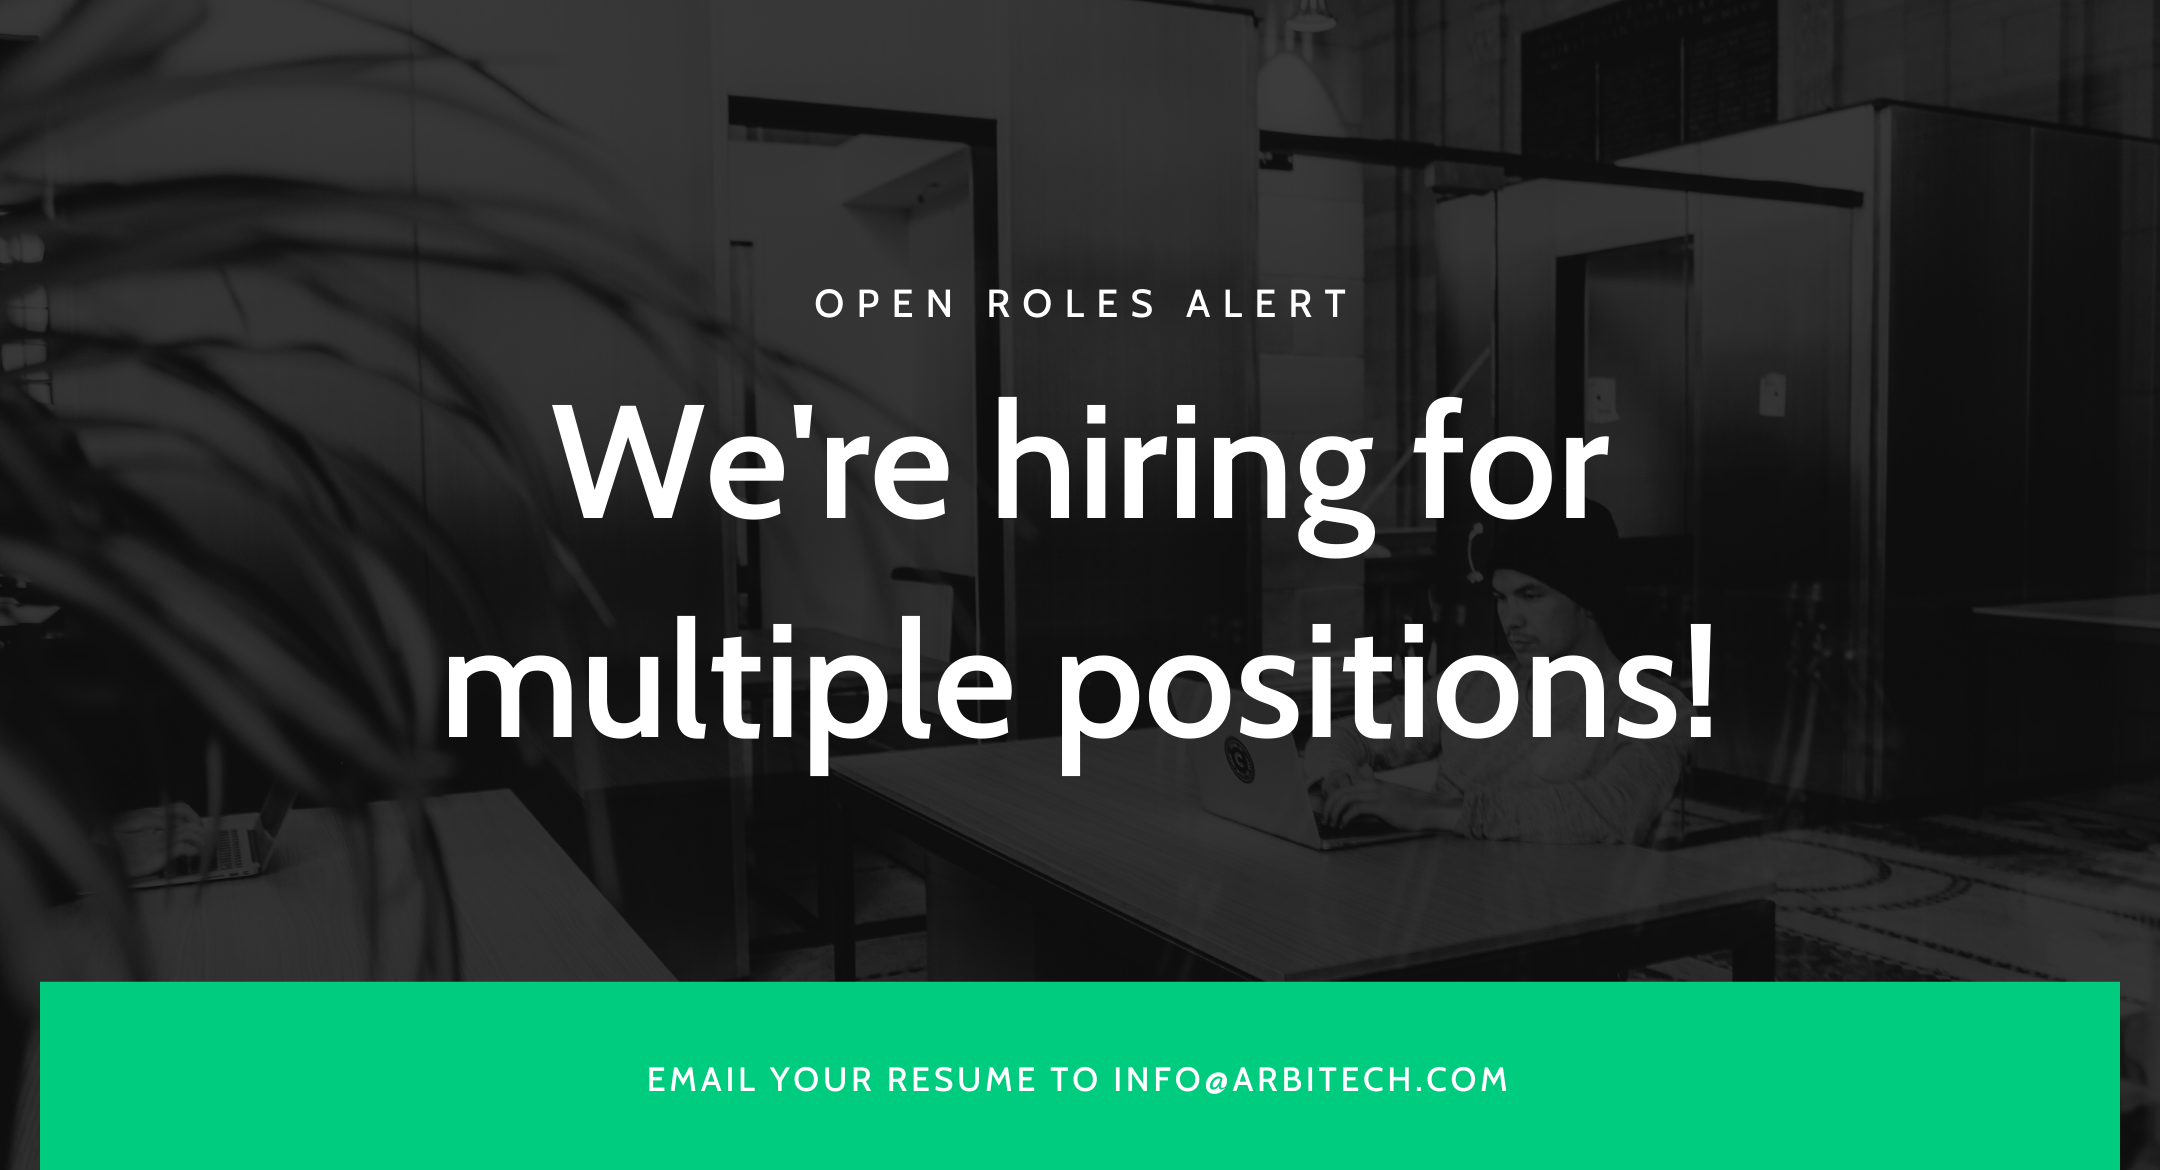 Our latest open roles